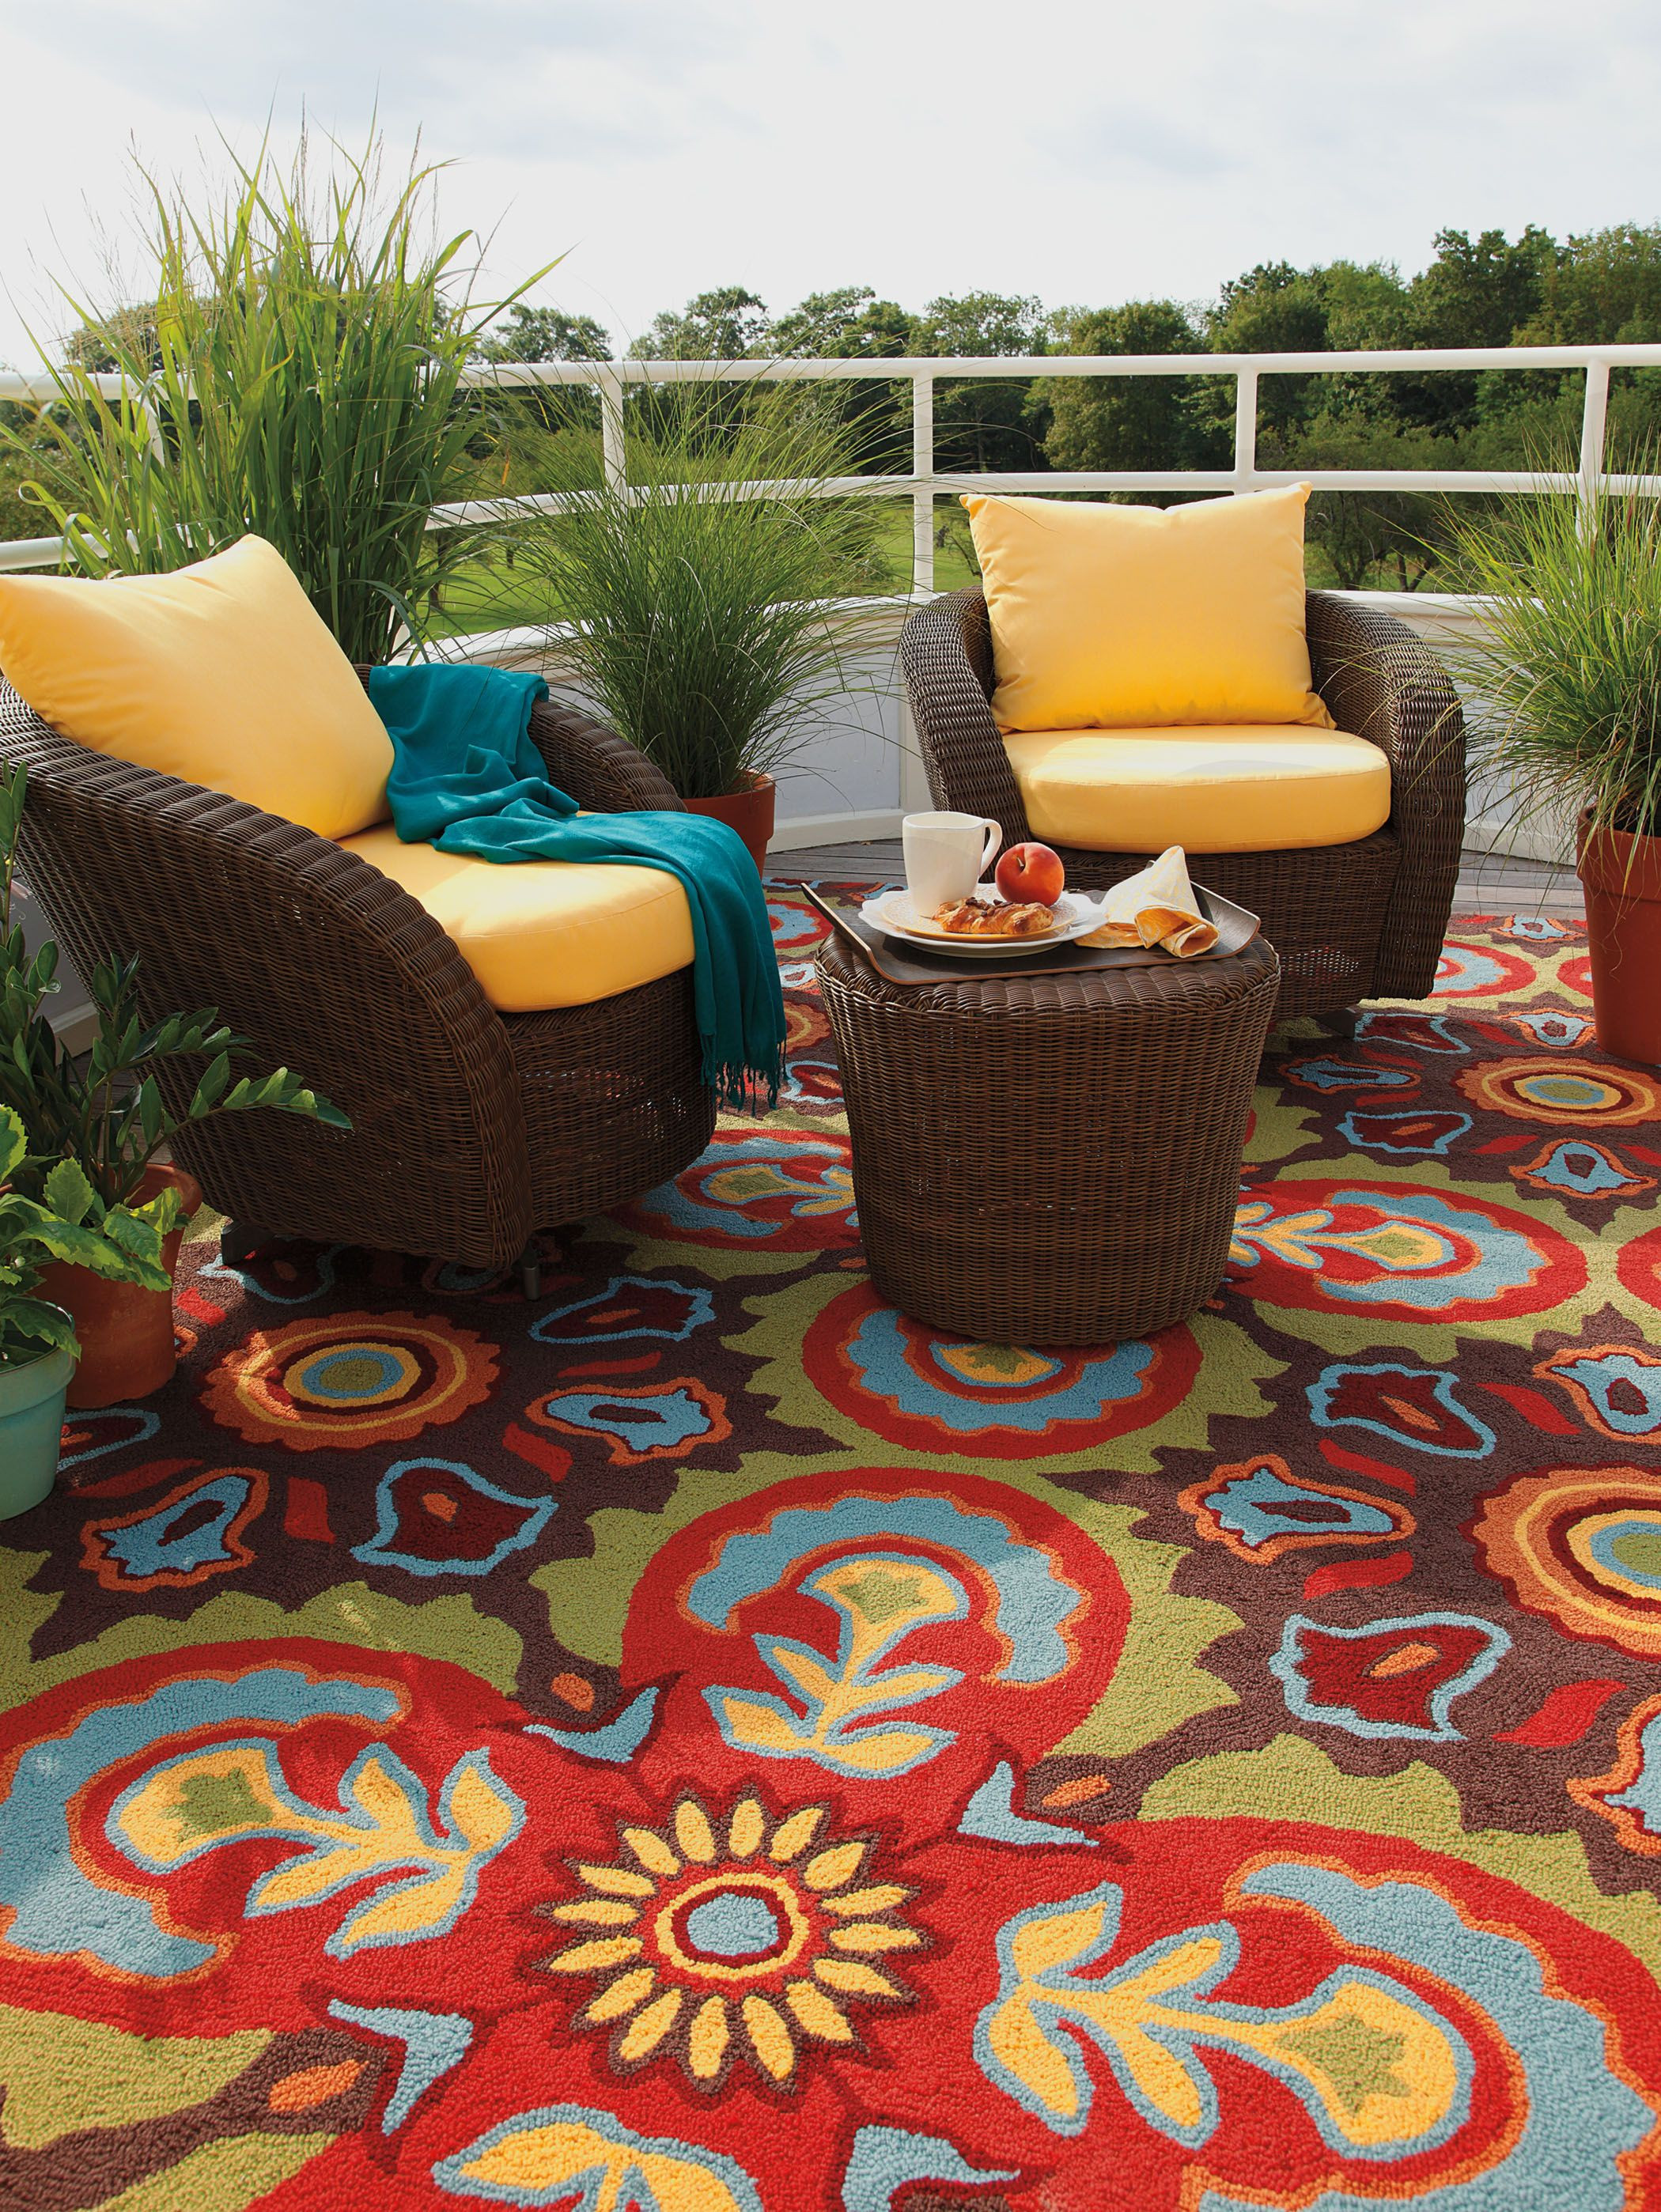 How stunning is pany C s Talevera Tile indoor outdoor rug Inspired by the motifs on colorful Talavera pottery from Mexico this rug enlarges upon a